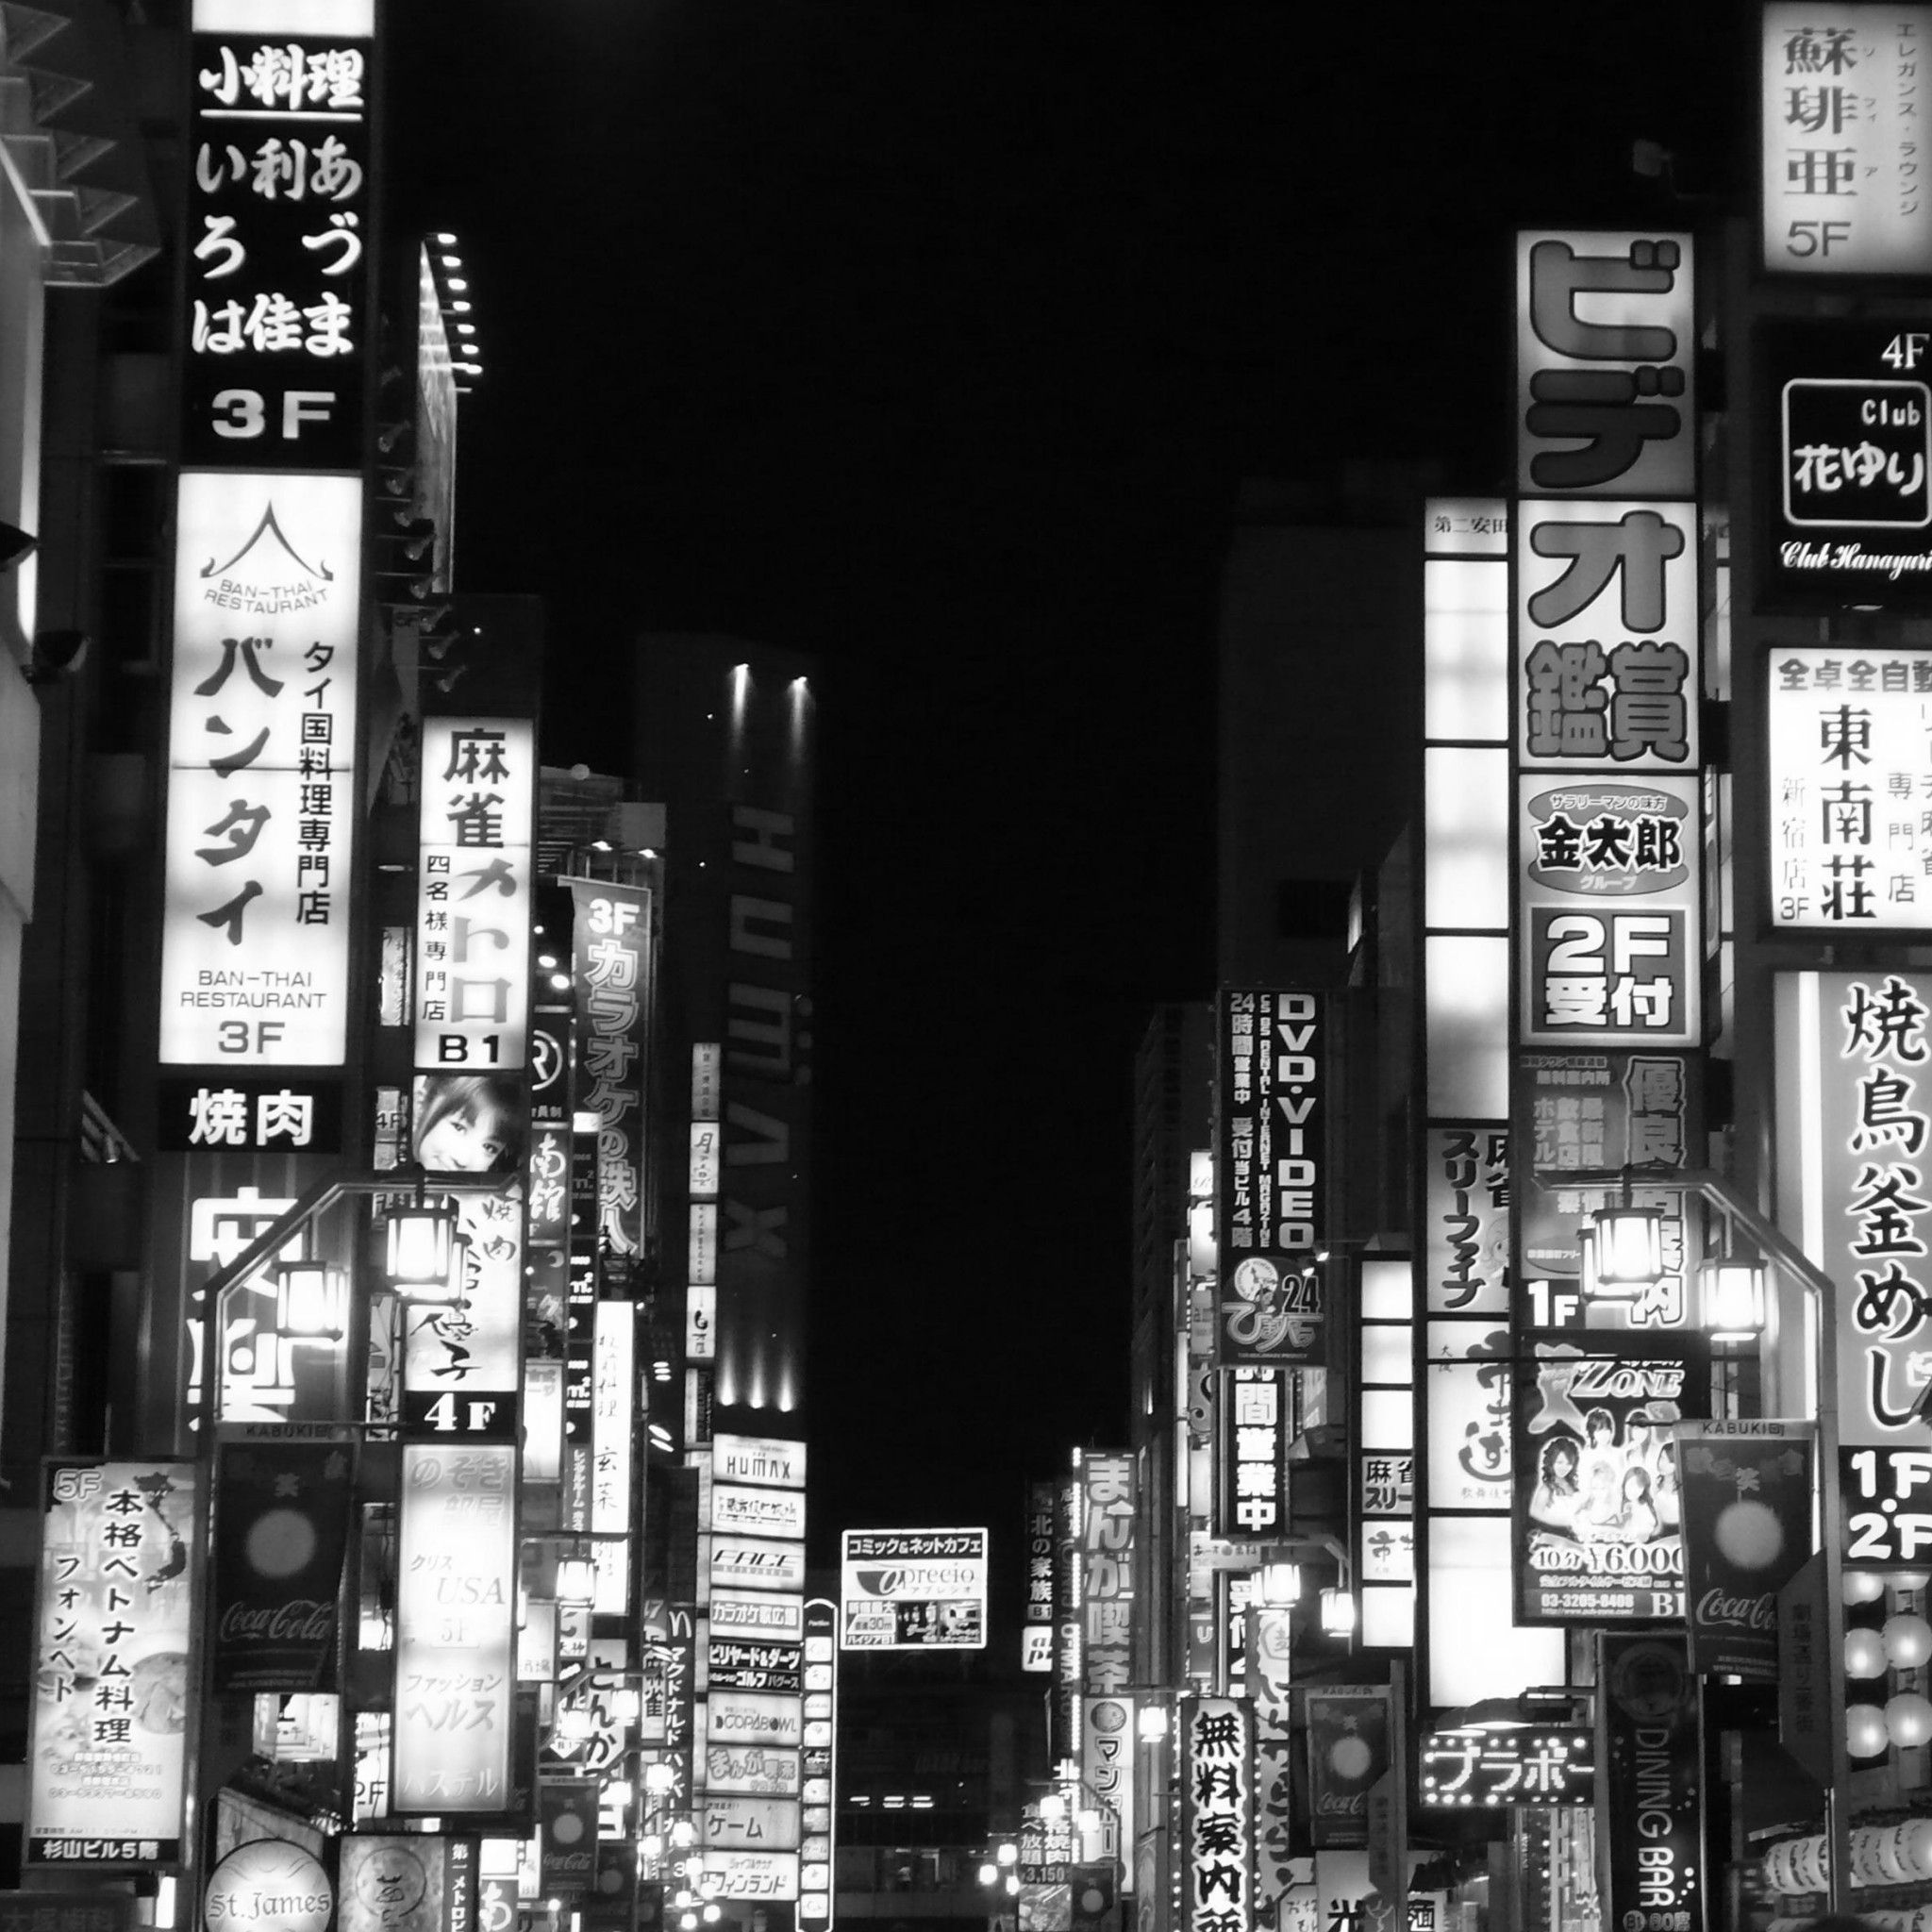 Tokyo City Lights Tap to see more black & white city wallpaper